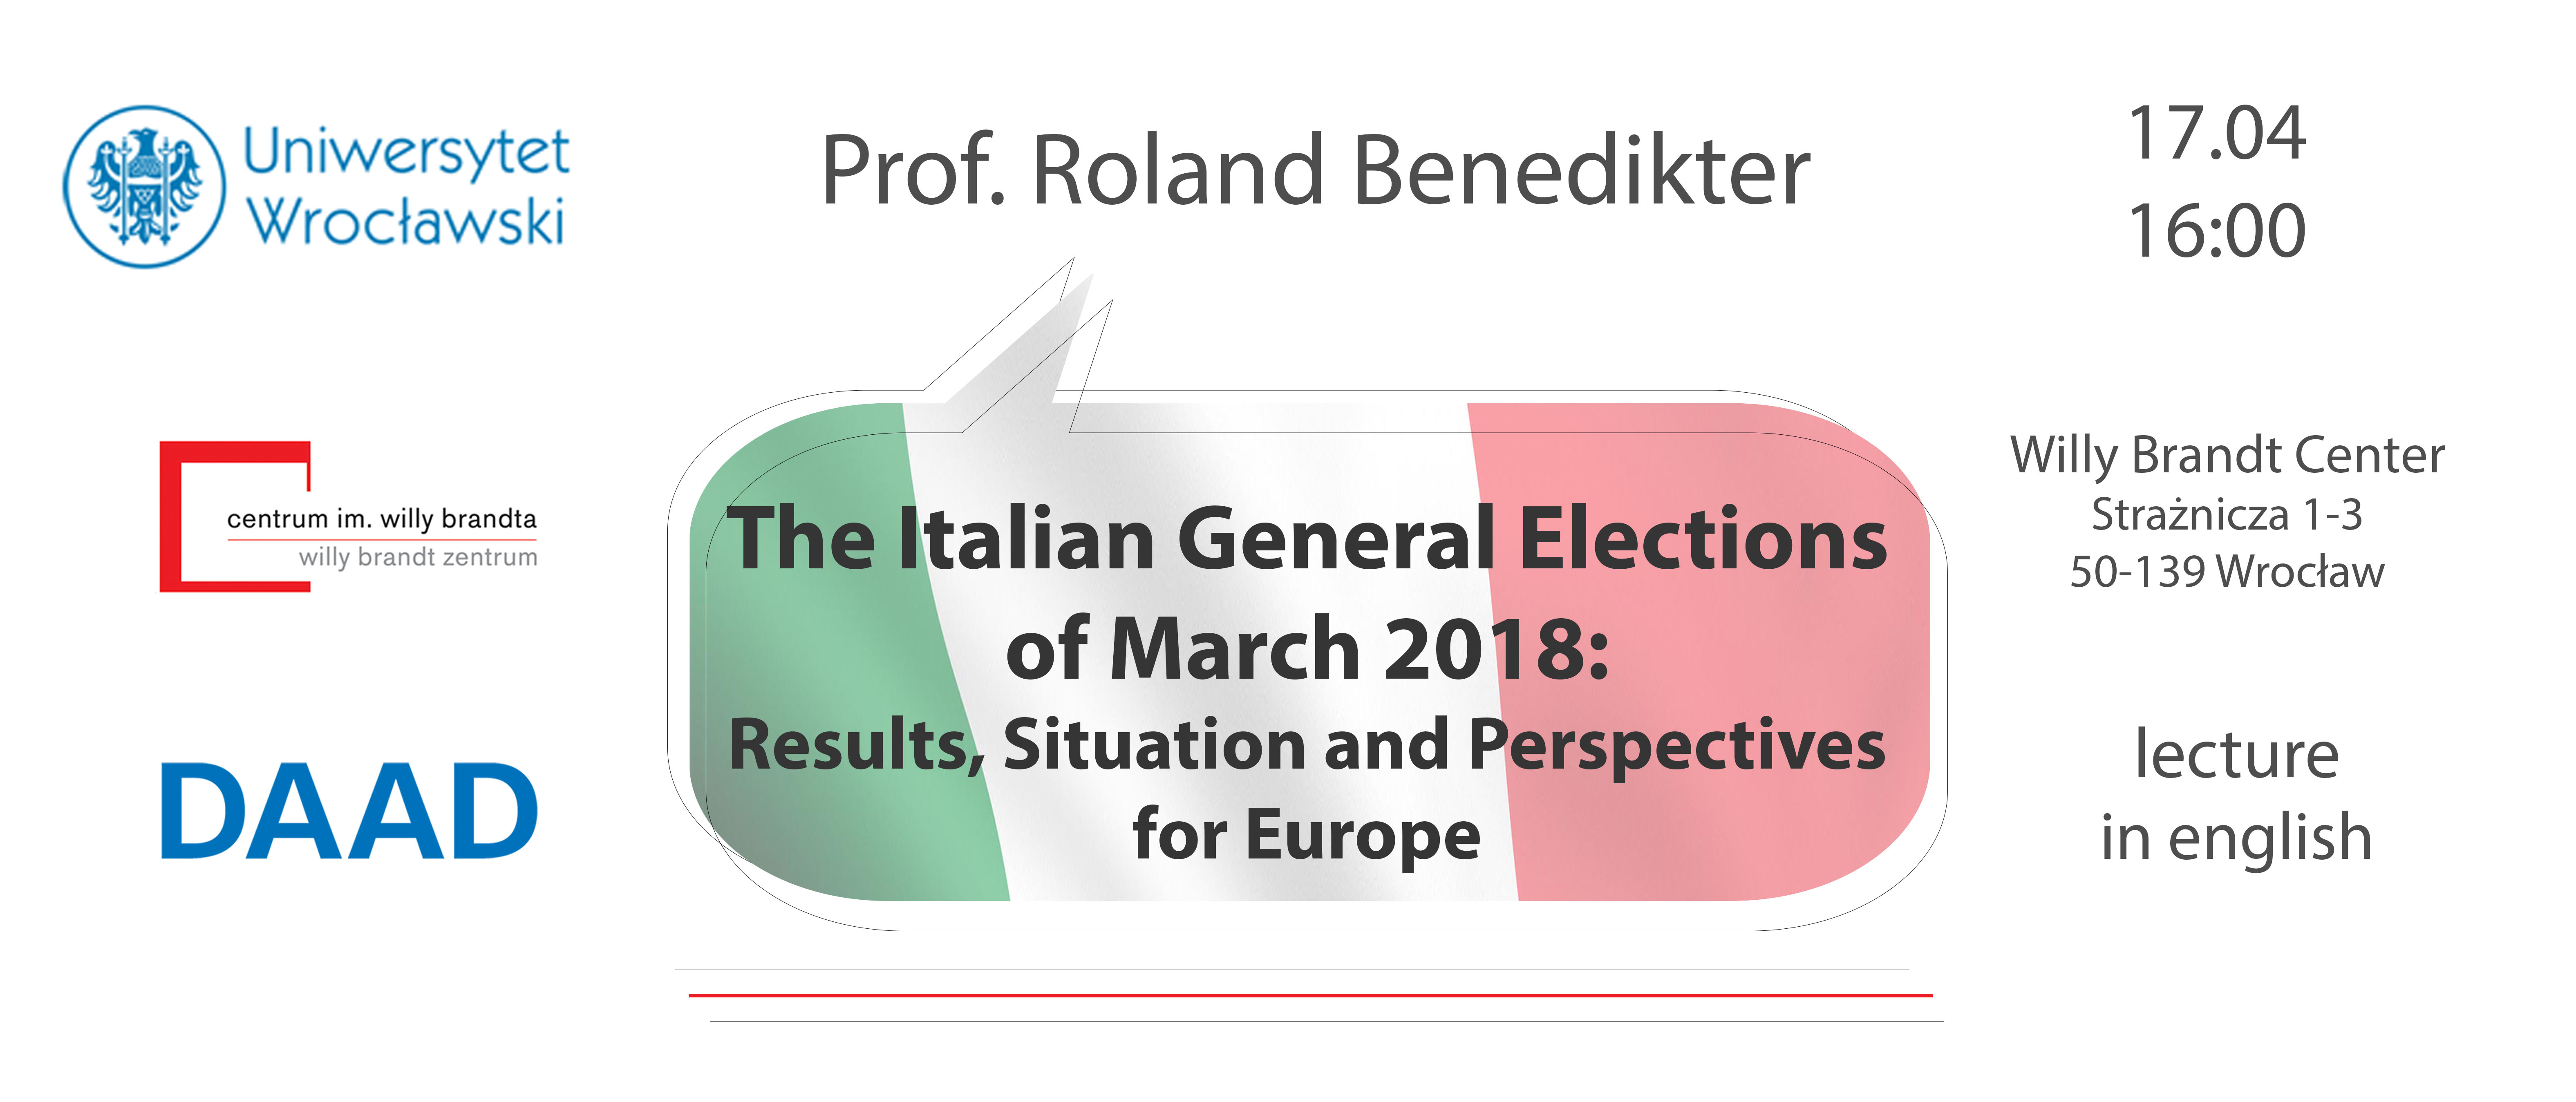 Prof. Benedikter | The Italian General Elections of March 2018